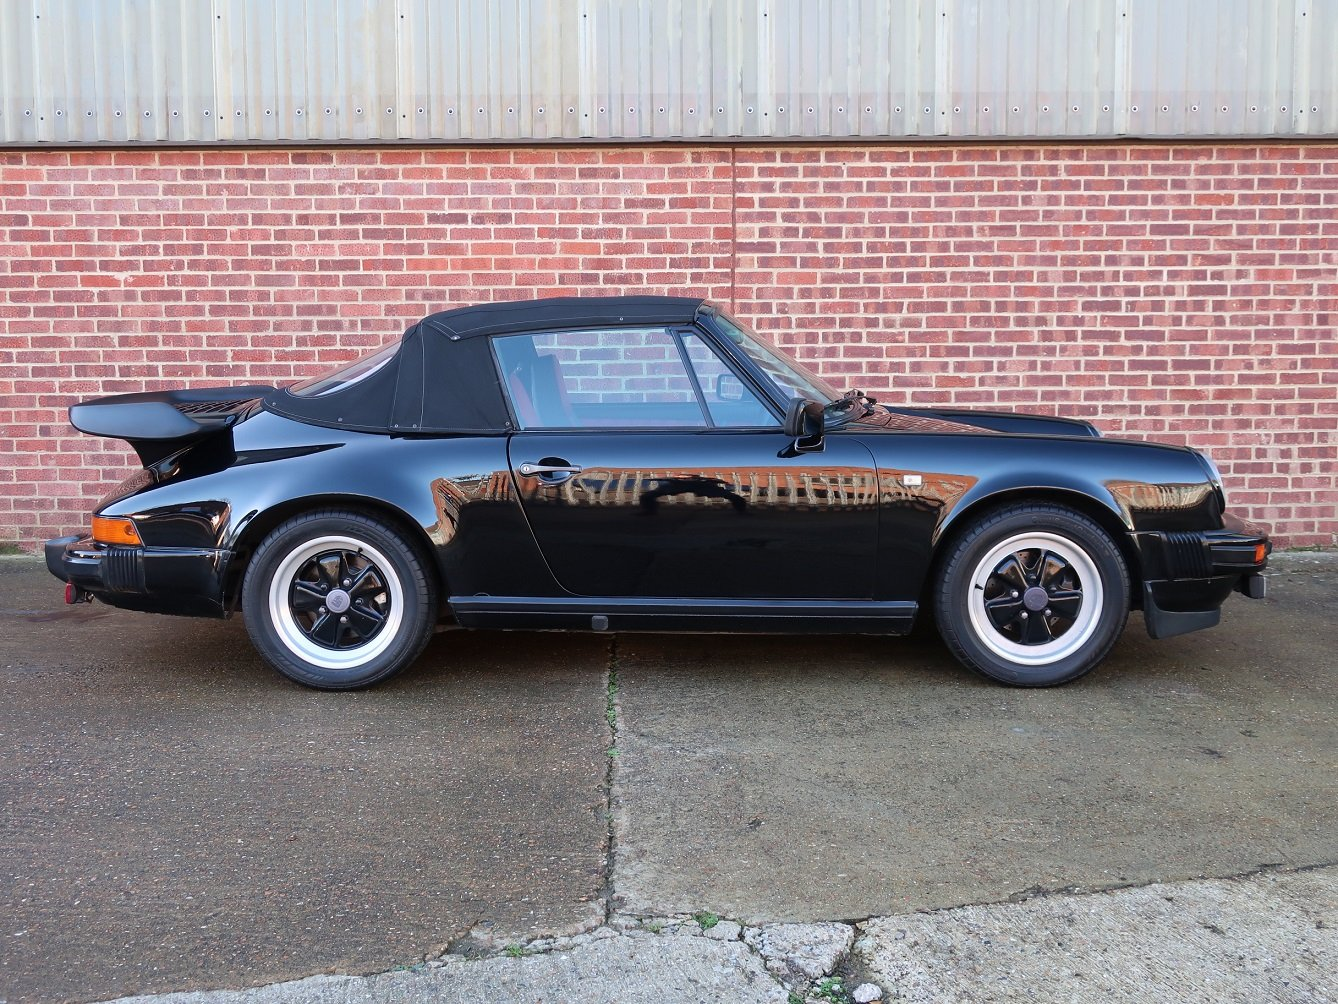 1983 Porsche 911 3.0 SC Cabriolet For Sale (picture 2 of 6)